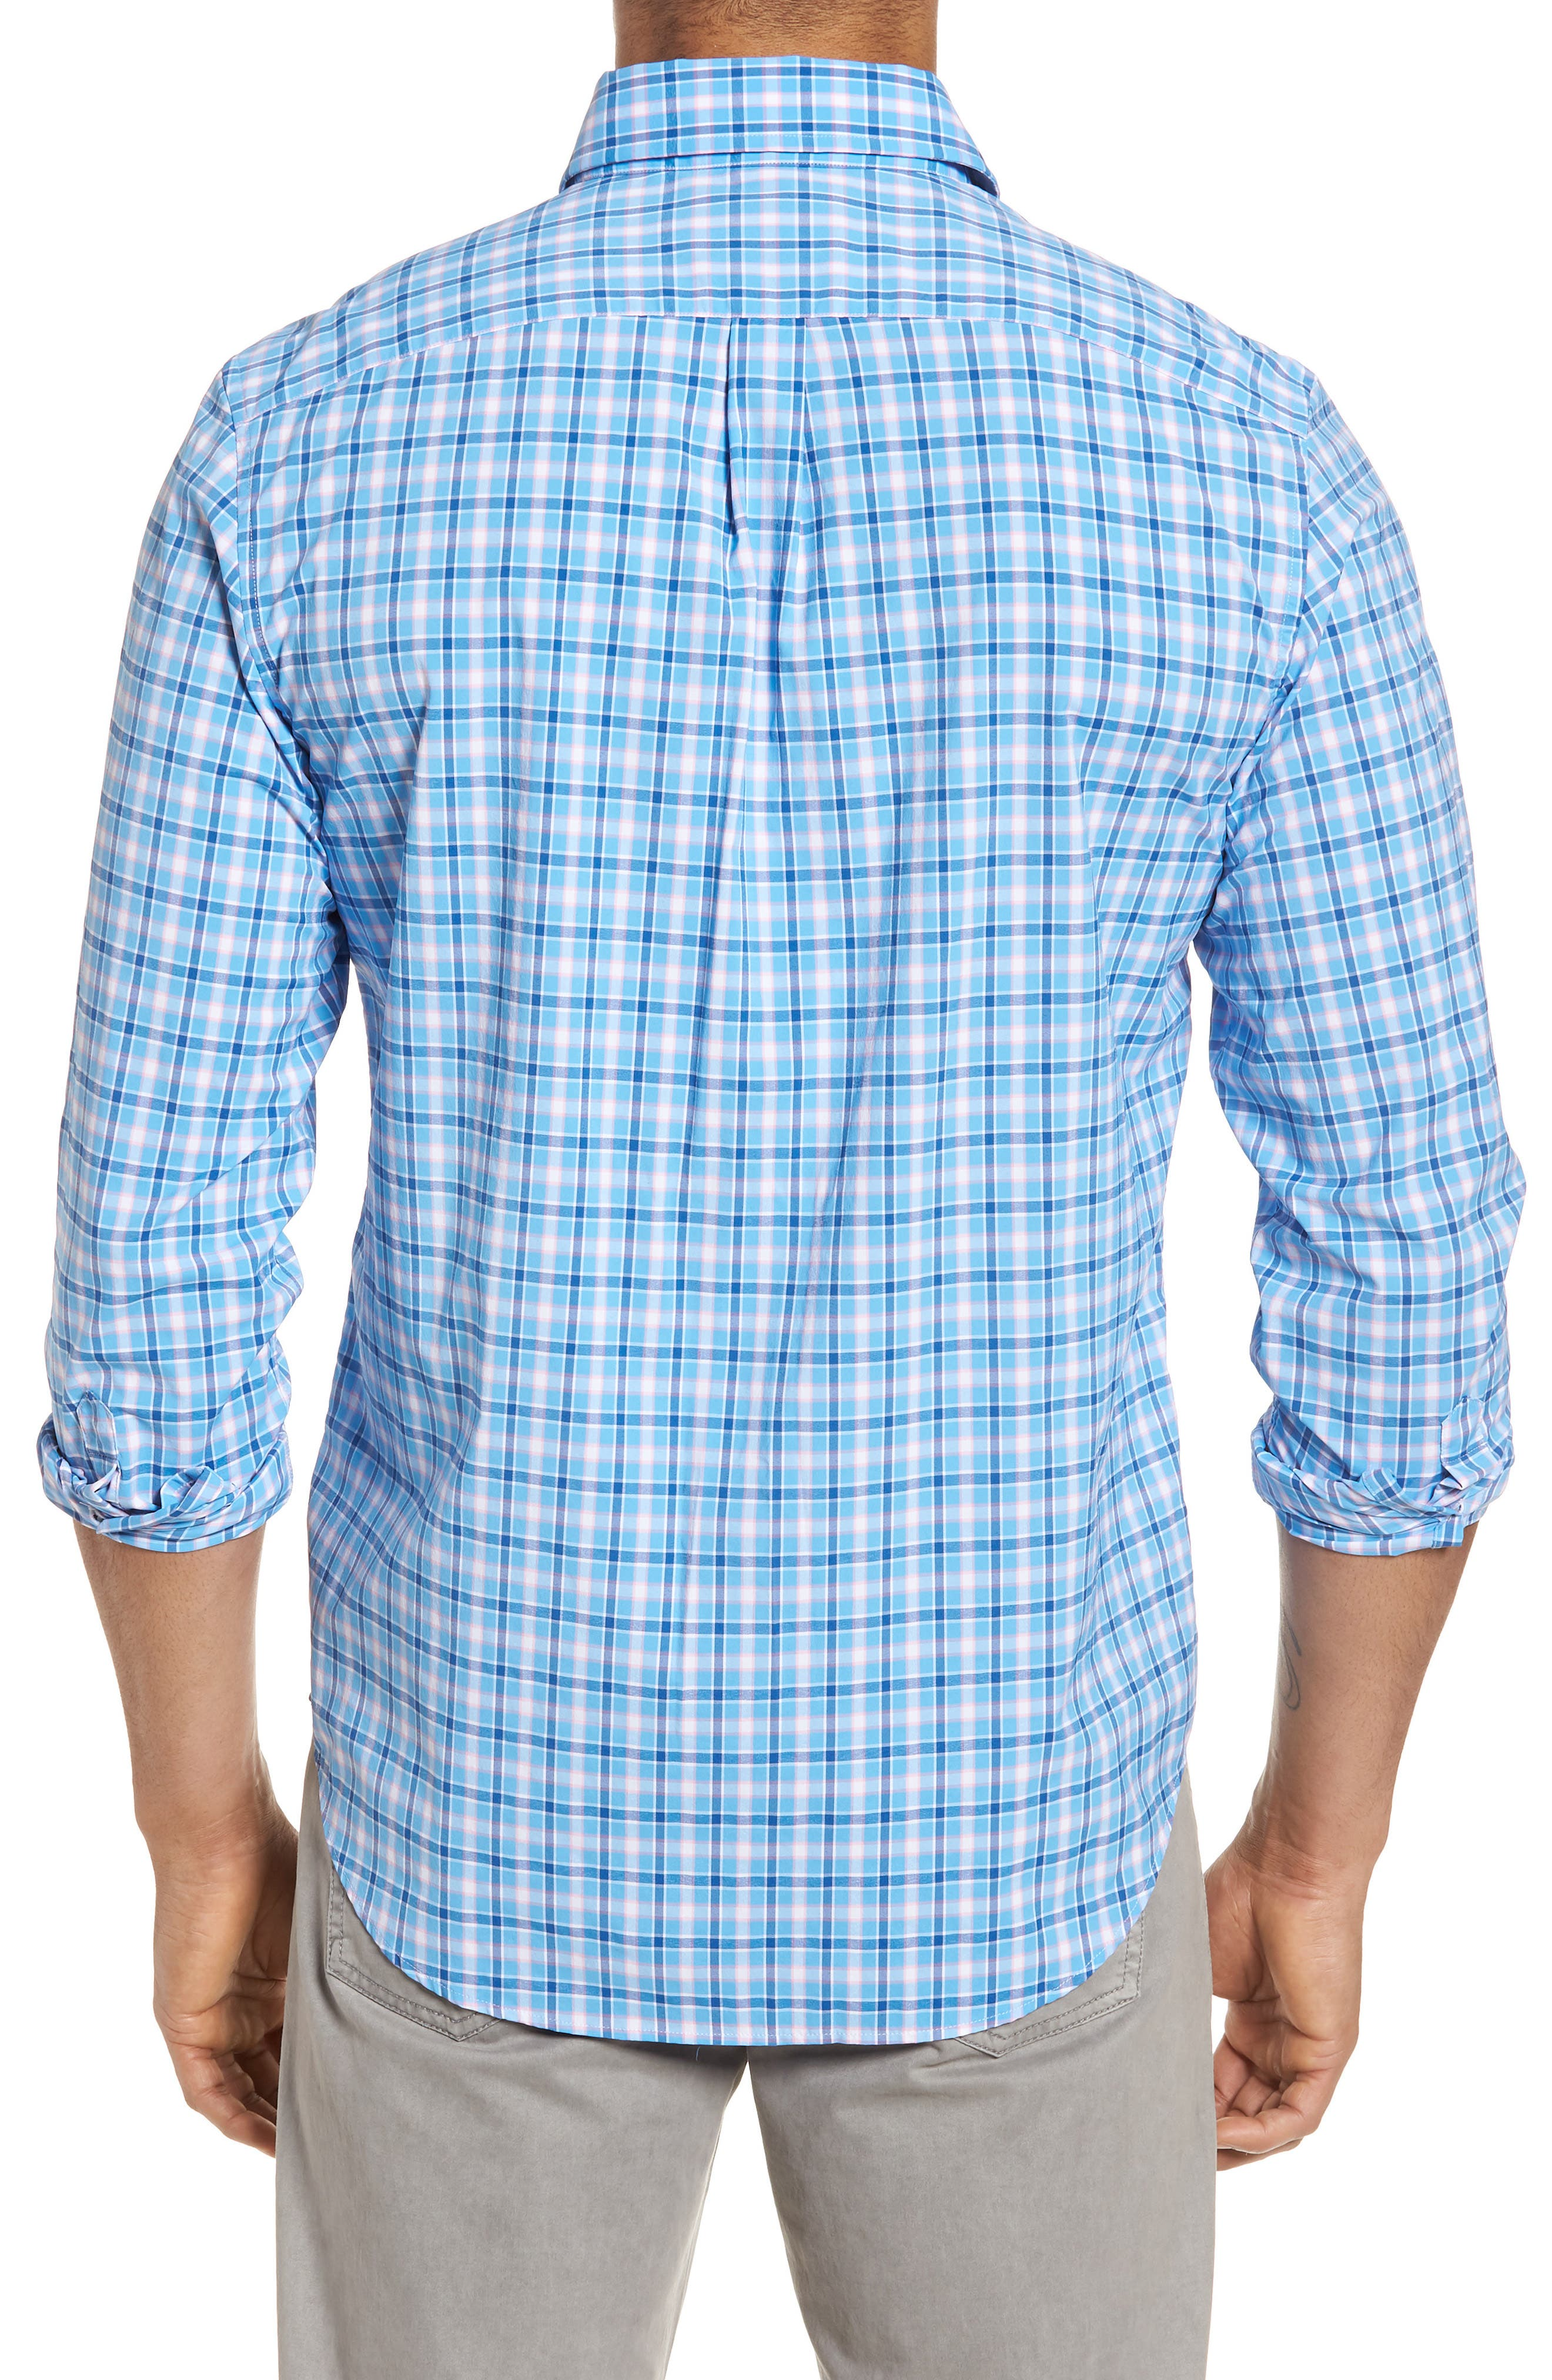 Lyford Cay Classic Fit Stretch Check Sport Shirt,                             Alternate thumbnail 2, color,                             Ocean Breeze